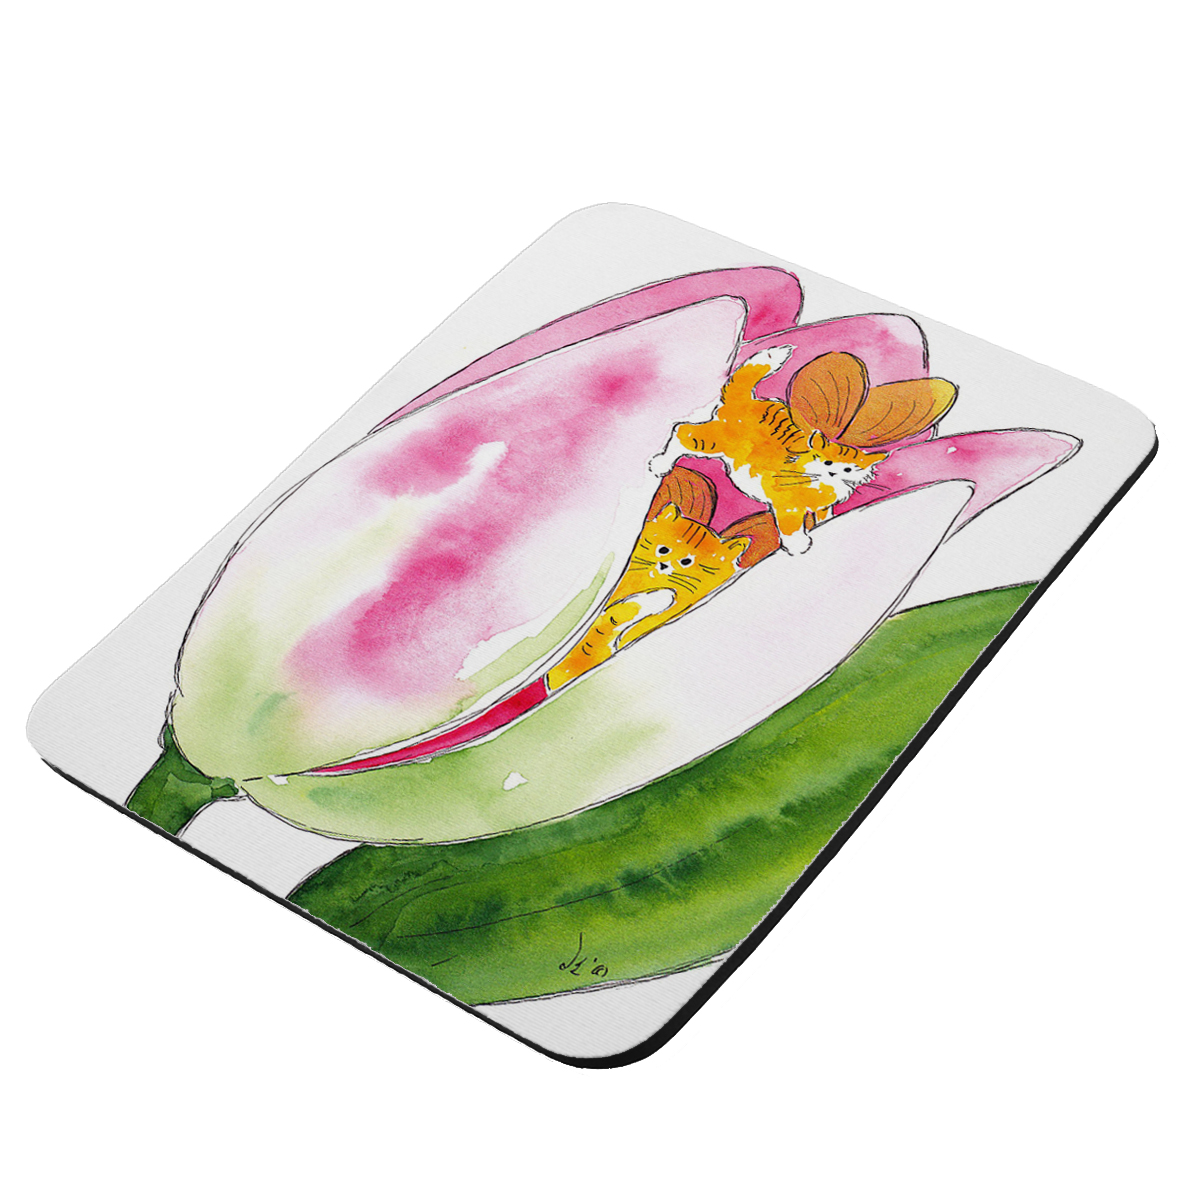 Tiny Tiger Kittie Fairies with Pink Tulip Fantasy Cat Art by Denise Every - KuzmarK Mousepad / Hot Pad / Trivet